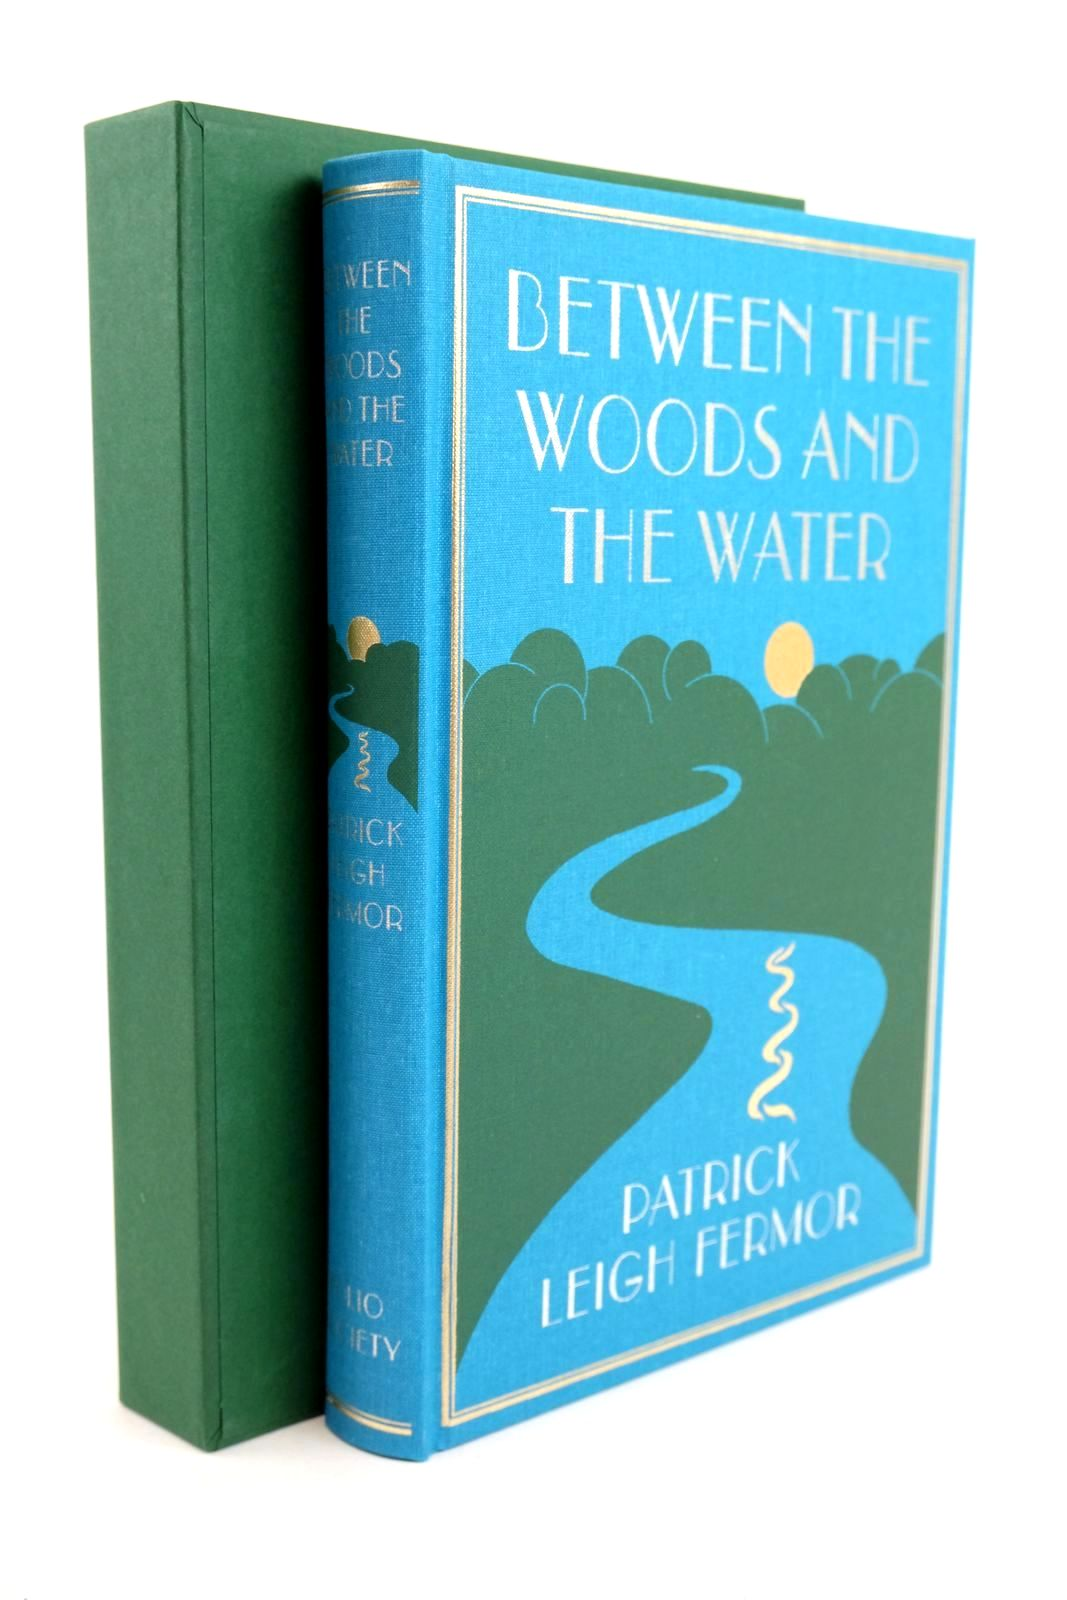 Photo of BETWEEN THE WOODS AND THE WATER written by Fermor, Patrick Leigh illustrated by Kuper, Mary published by Folio Society (STOCK CODE: 1318921)  for sale by Stella & Rose's Books